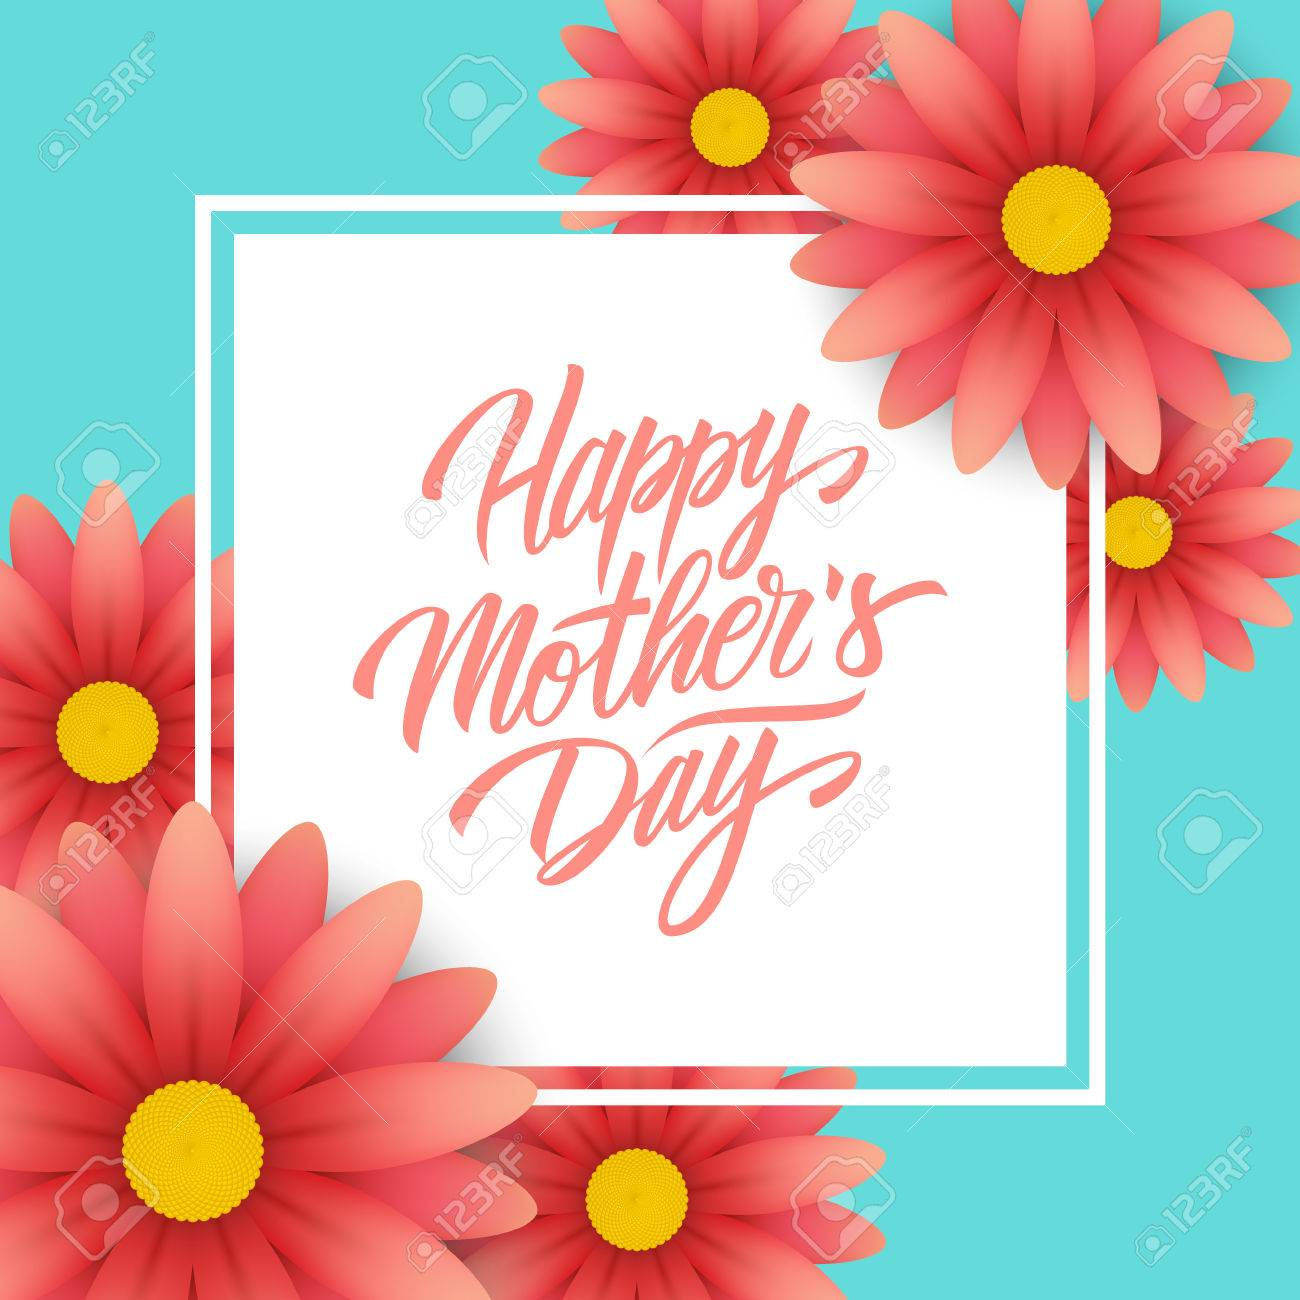 Happy Mothers Day Greeting Card With Calligraphic Lettering